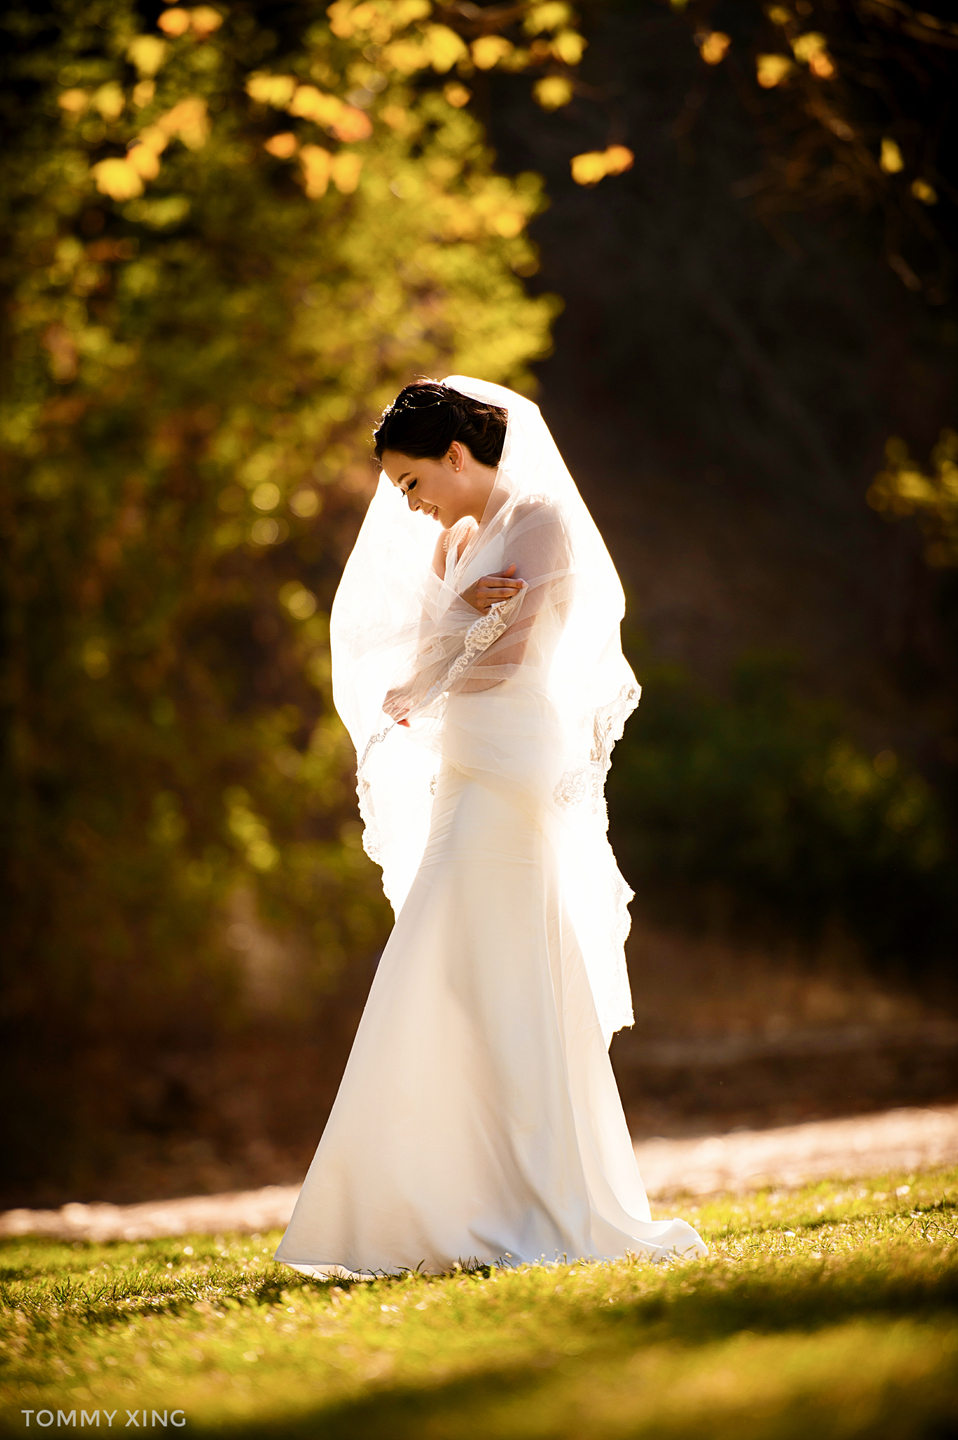 Los Angeles per-wedding 洛杉矶婚纱照 by Tommy Xing Photography 08.jpg